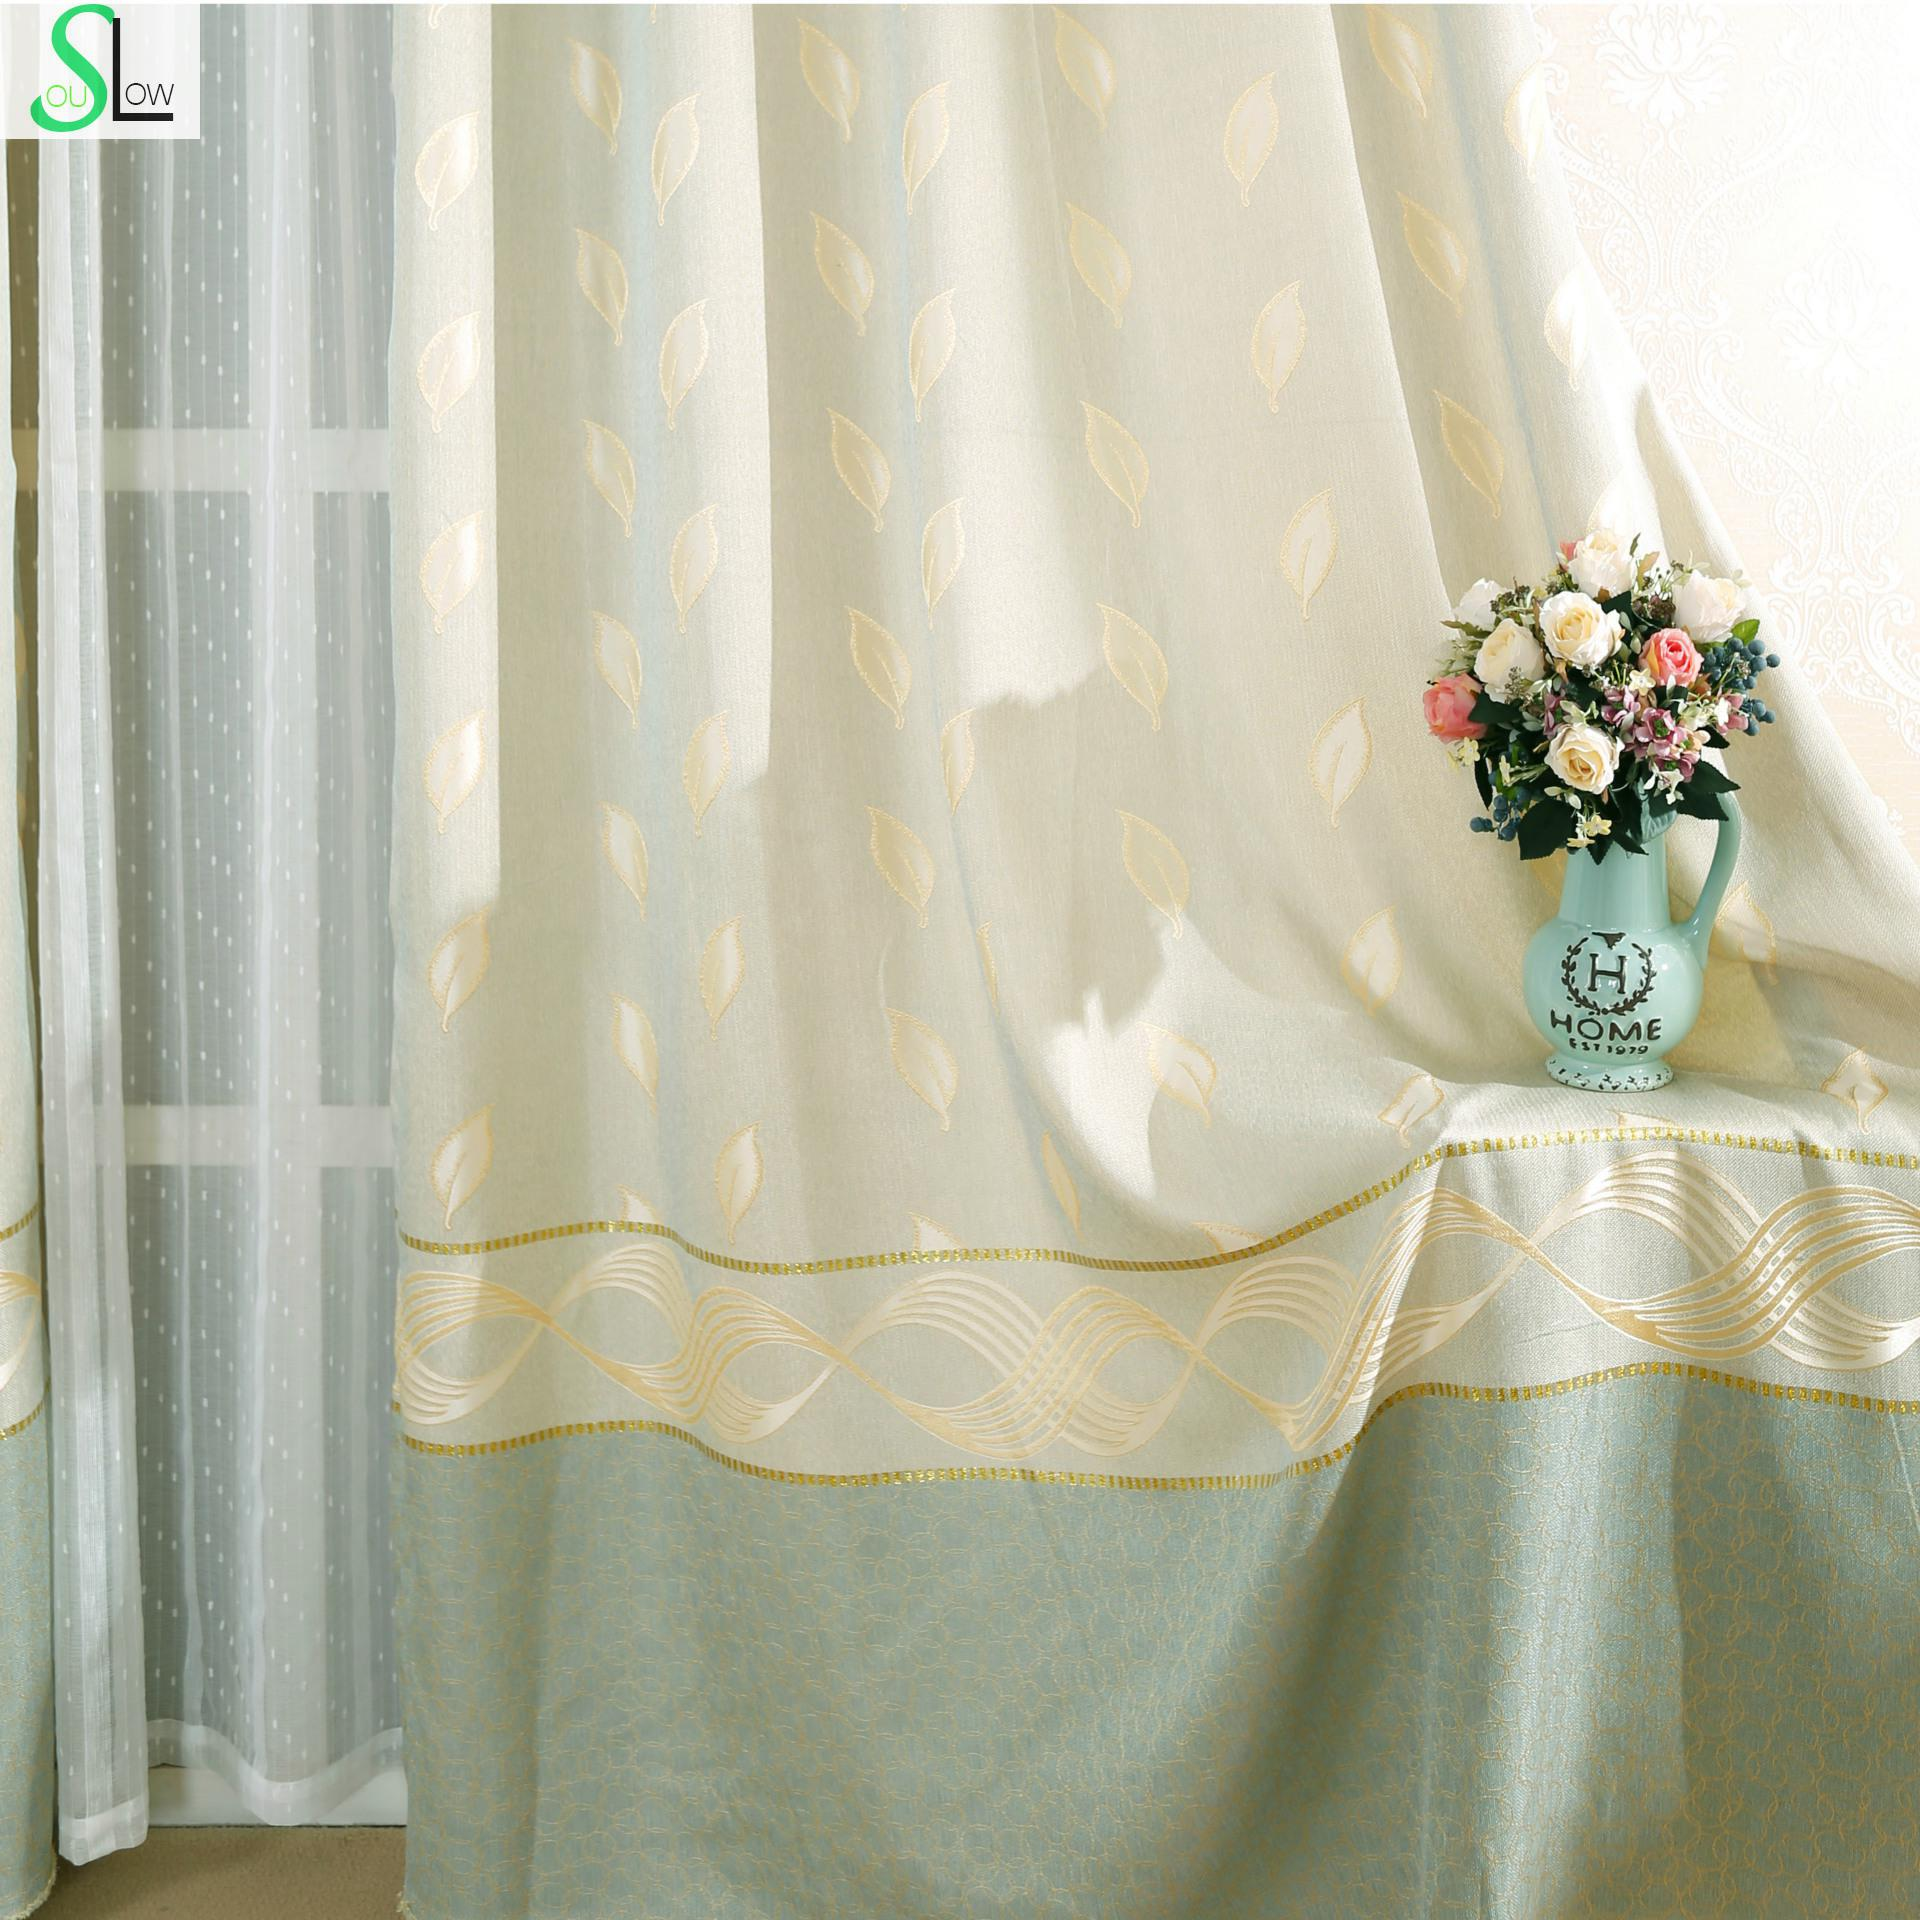 Cafe curtains for bedroom - Slow Soul Light Blue Fresh Jacquard Curtains Linen Curtain Pastoral Leaves Tulle For Living Room Kitchen Cafe Bedroom Custom